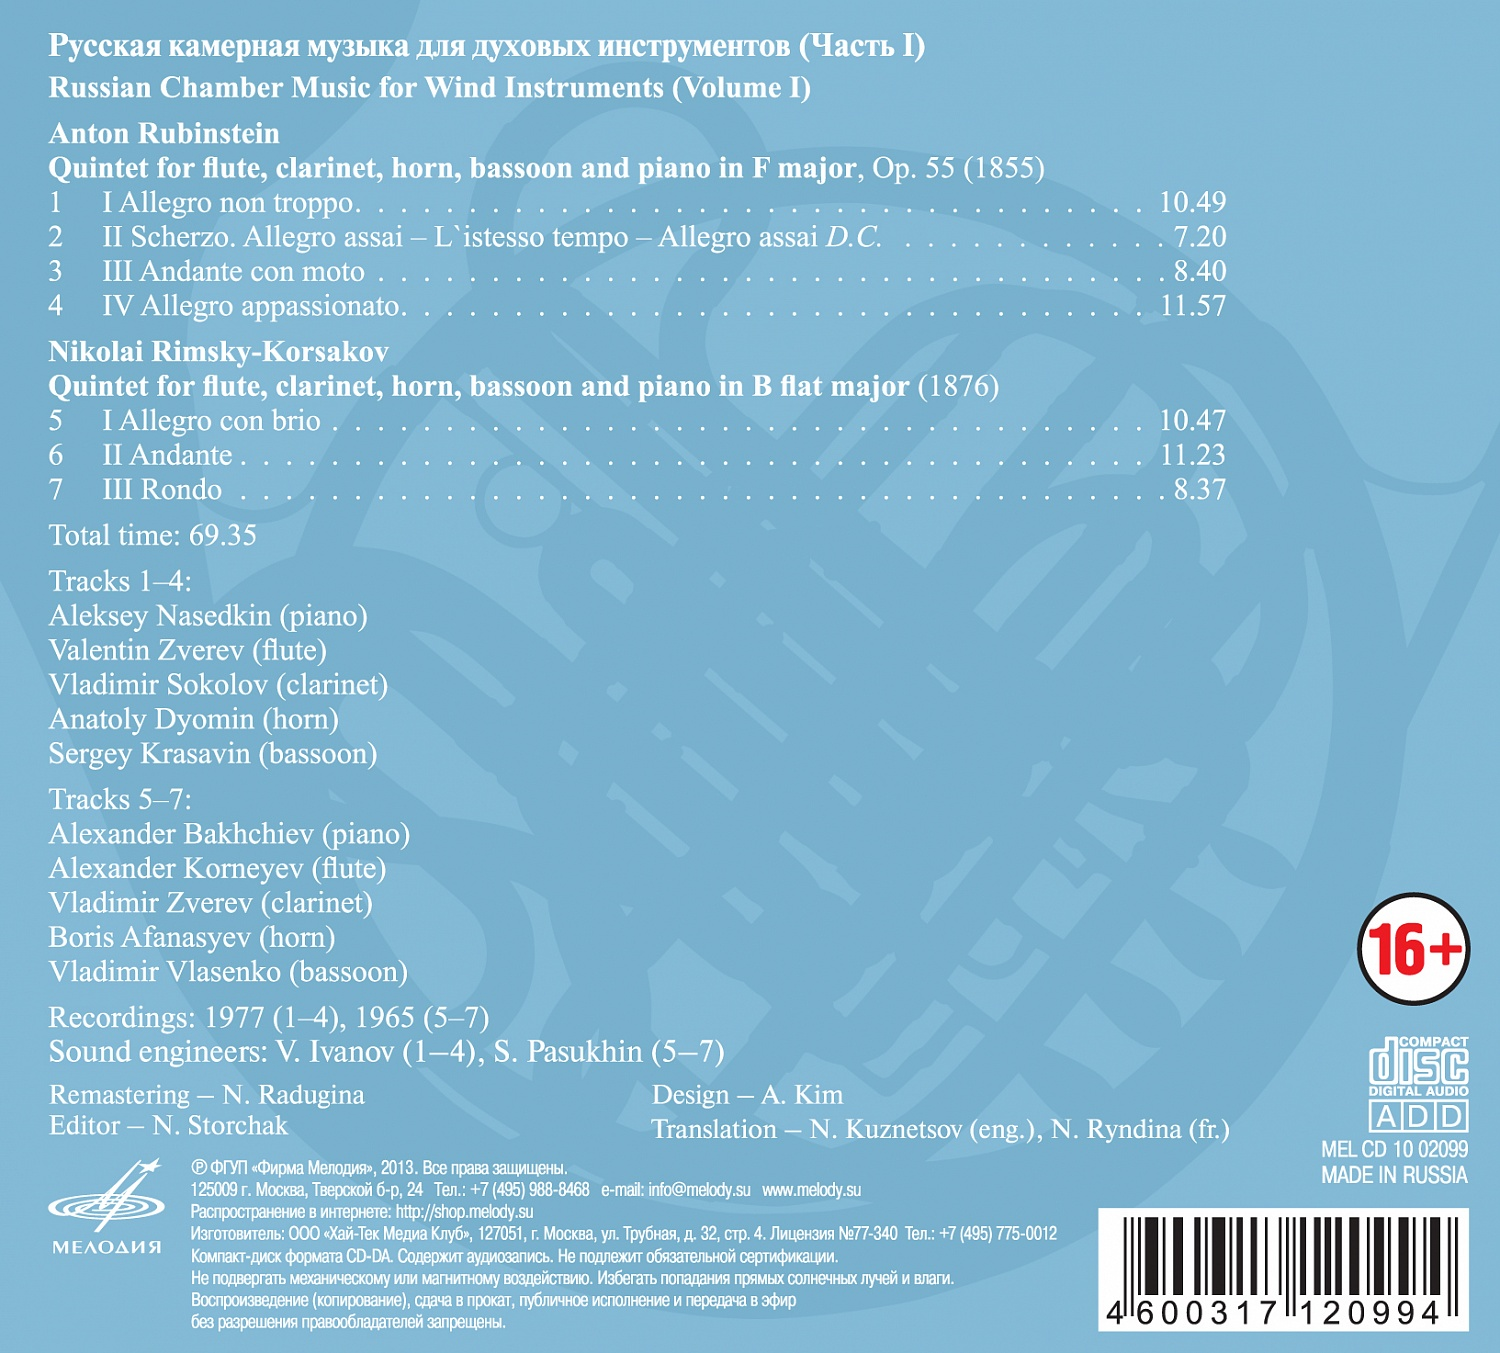 Russian Chamber Music for Wind Instruments, Pt  I (1 CD